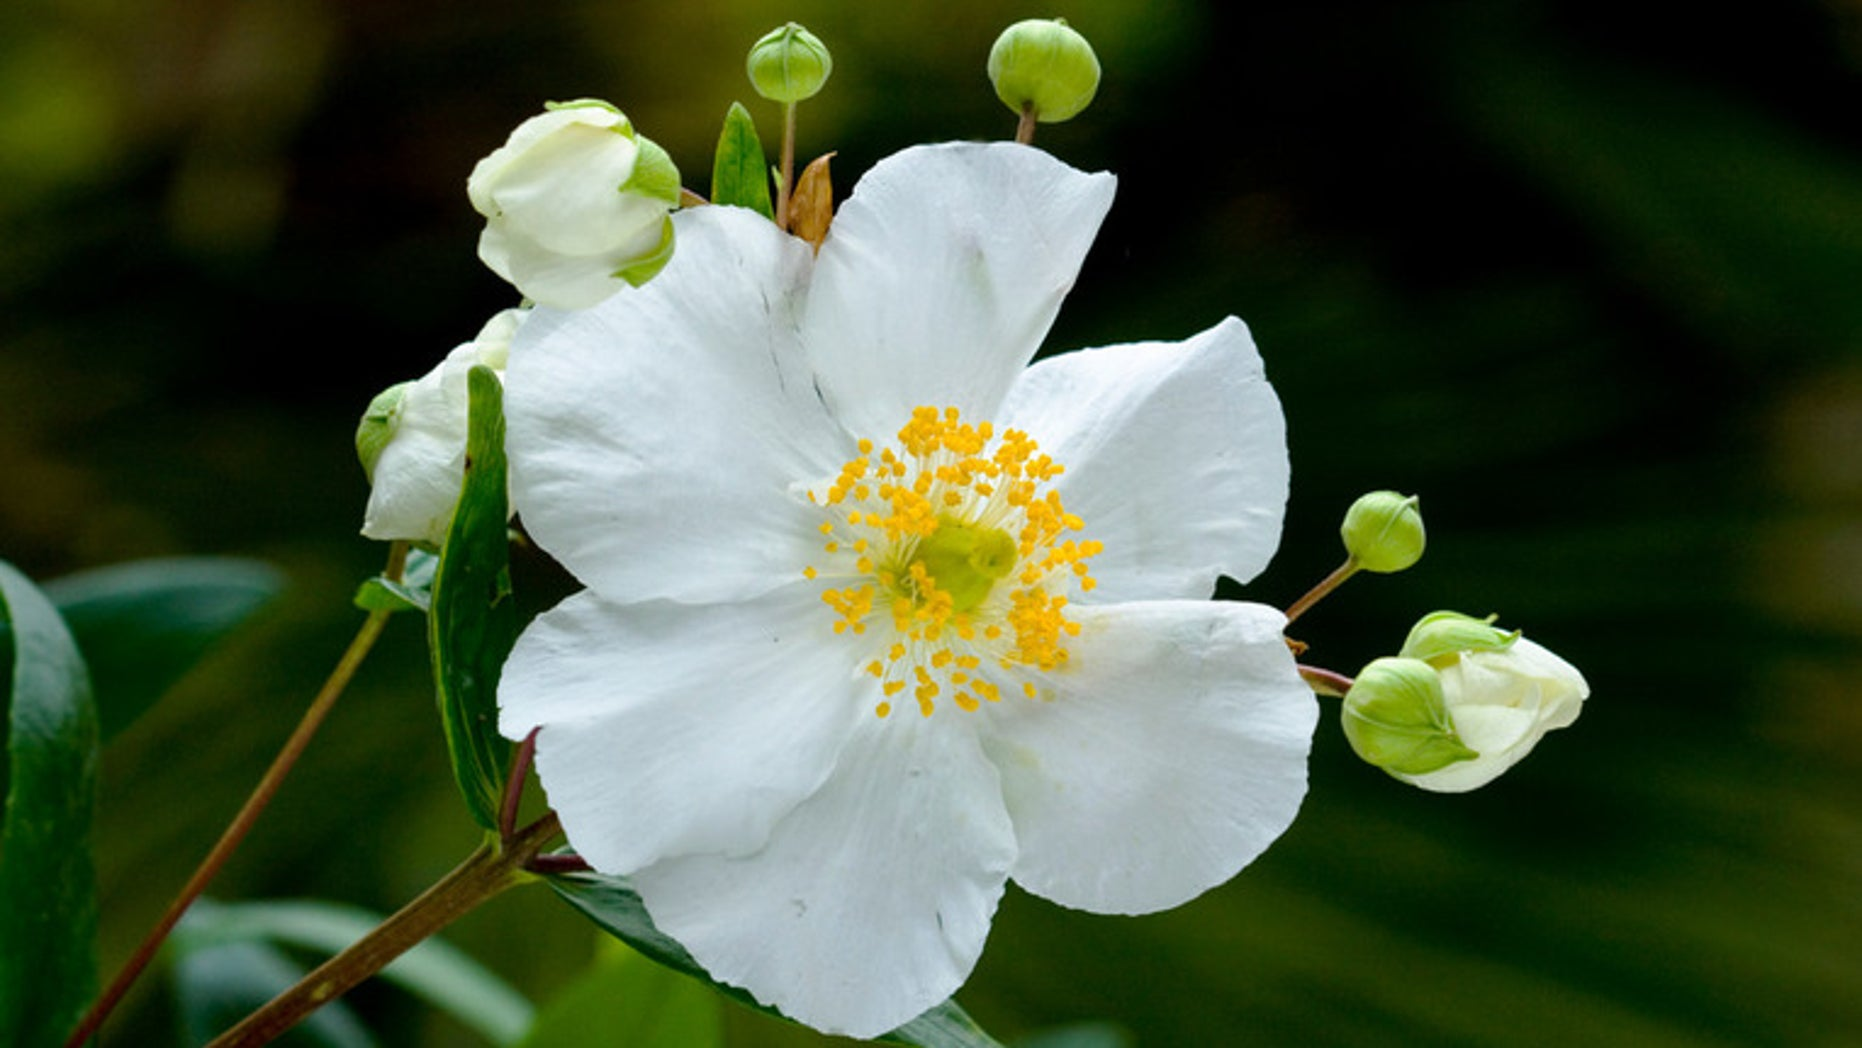 White Flowers Brighten Gardens By Enhancing Everything Around Them, Rather  Than Stealing The Show. Here Are 20 Of Our Favorite White Flowering Great  Design ...